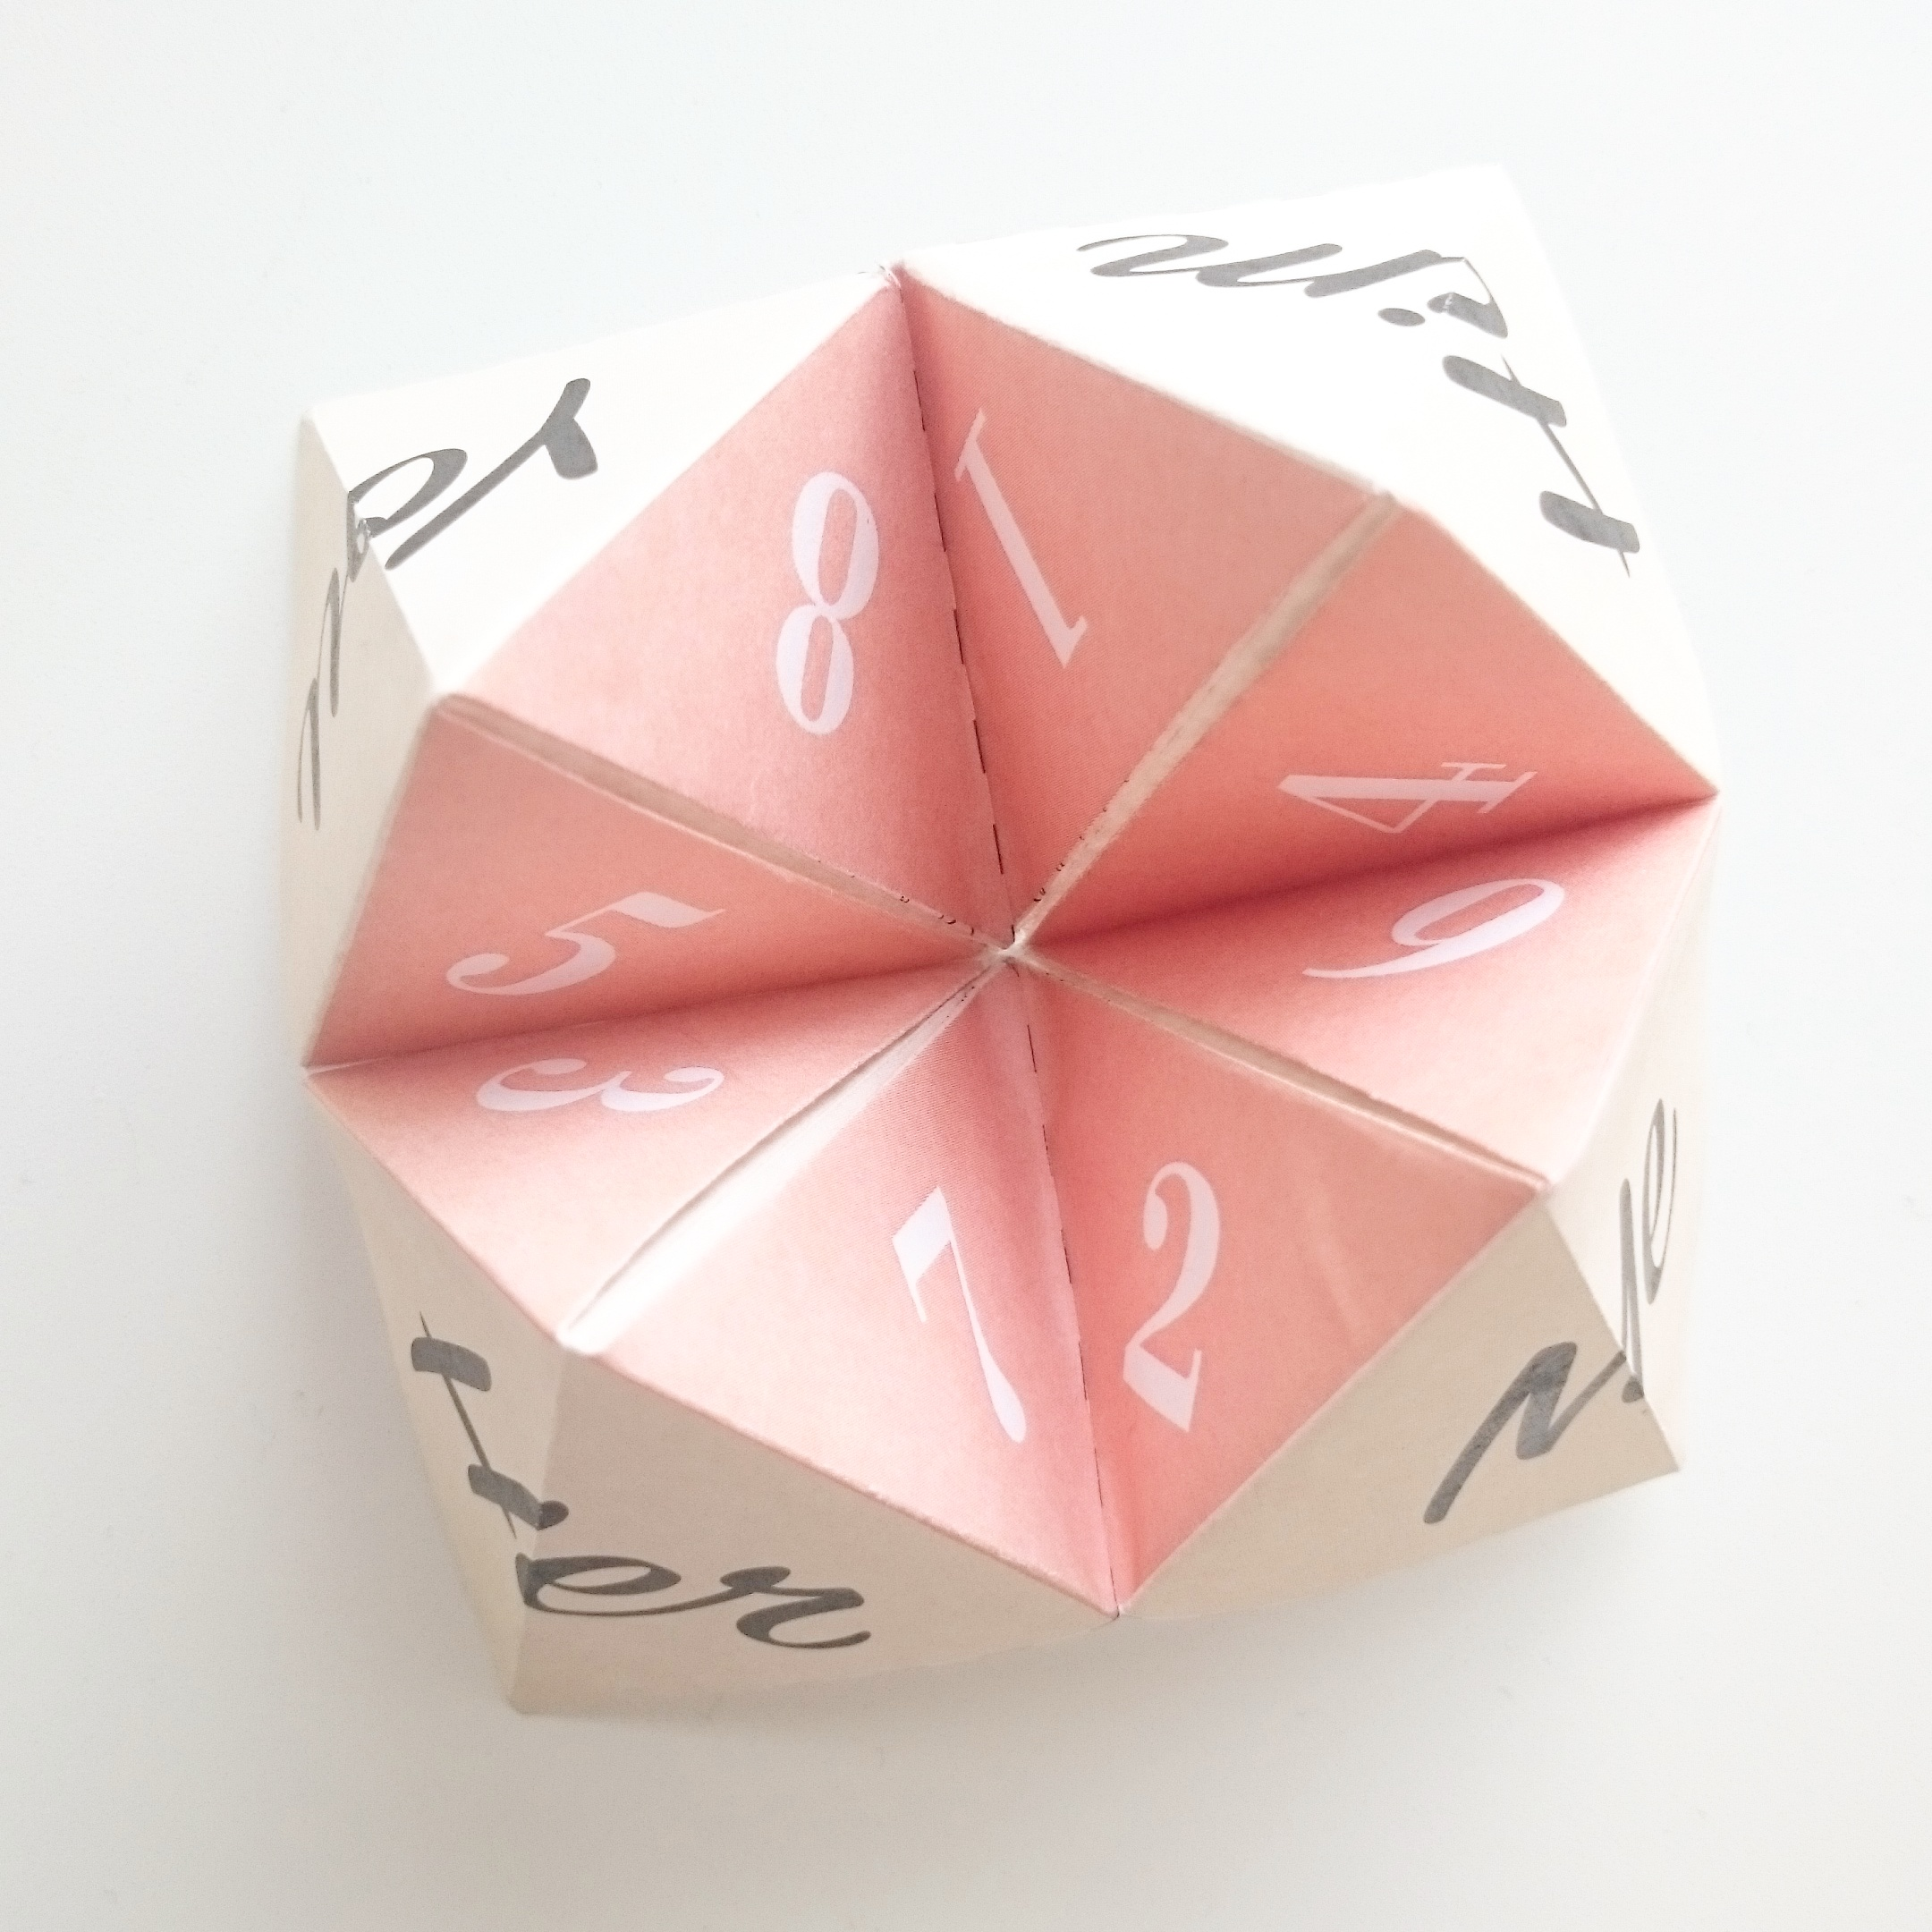 A Valentine's Day Cootie Catcher Download Printout for You